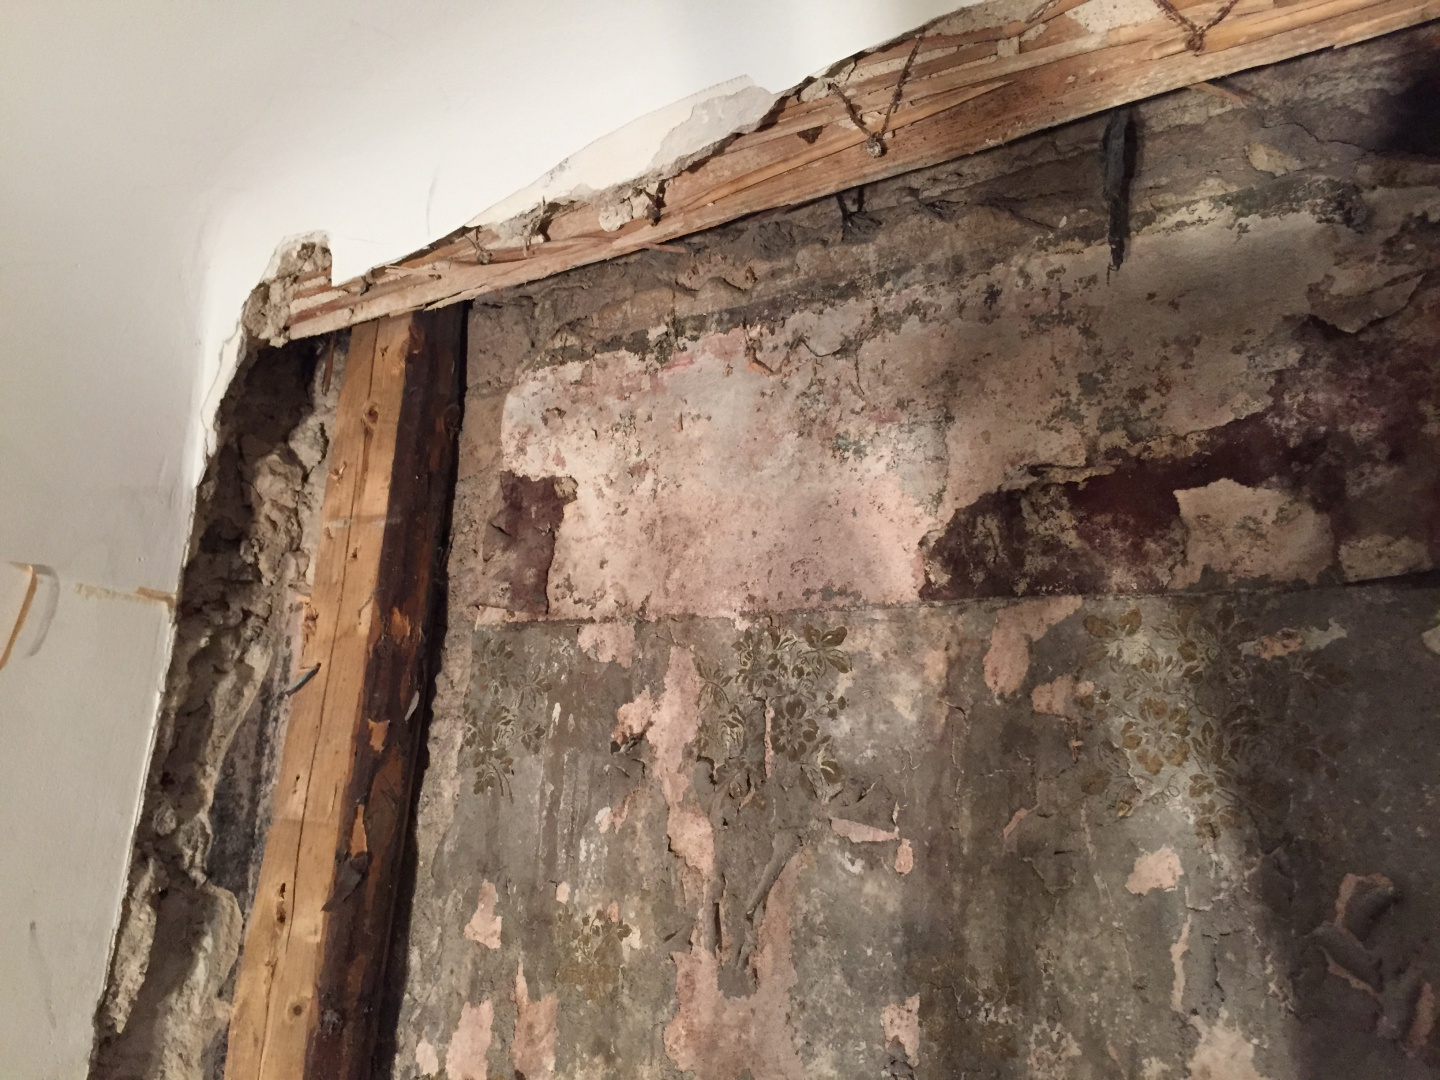 fig 8. Initially the wallpaper had been glued on the inner surface of the limestone outer wall but after the reconstructions of the parlour the wallpaper was left in an airless 10cm-wide space provided by the construction balks of the double wall.